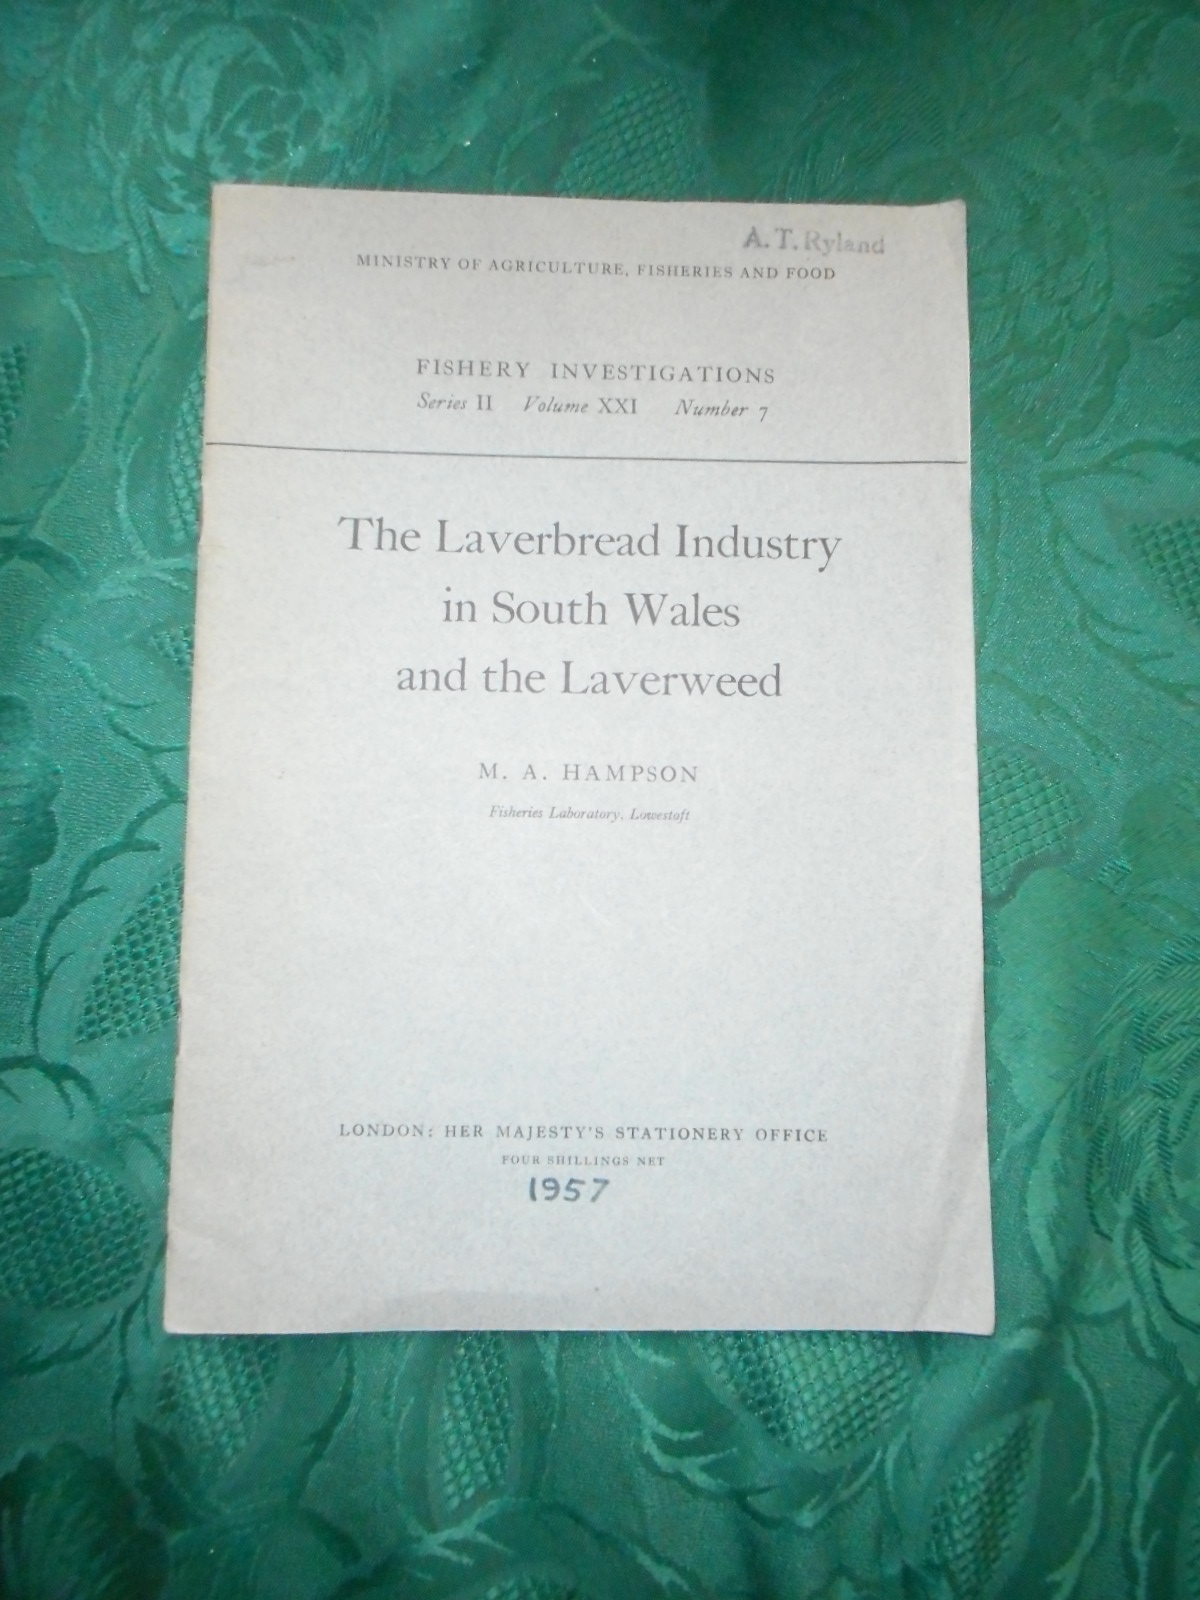 Image for Fisheries Investigations. Series II, Volume XX1, Number 7. (Series 2, Vol 21, No. 7). The Laverbread Industry in South Wales and the Laverweed.